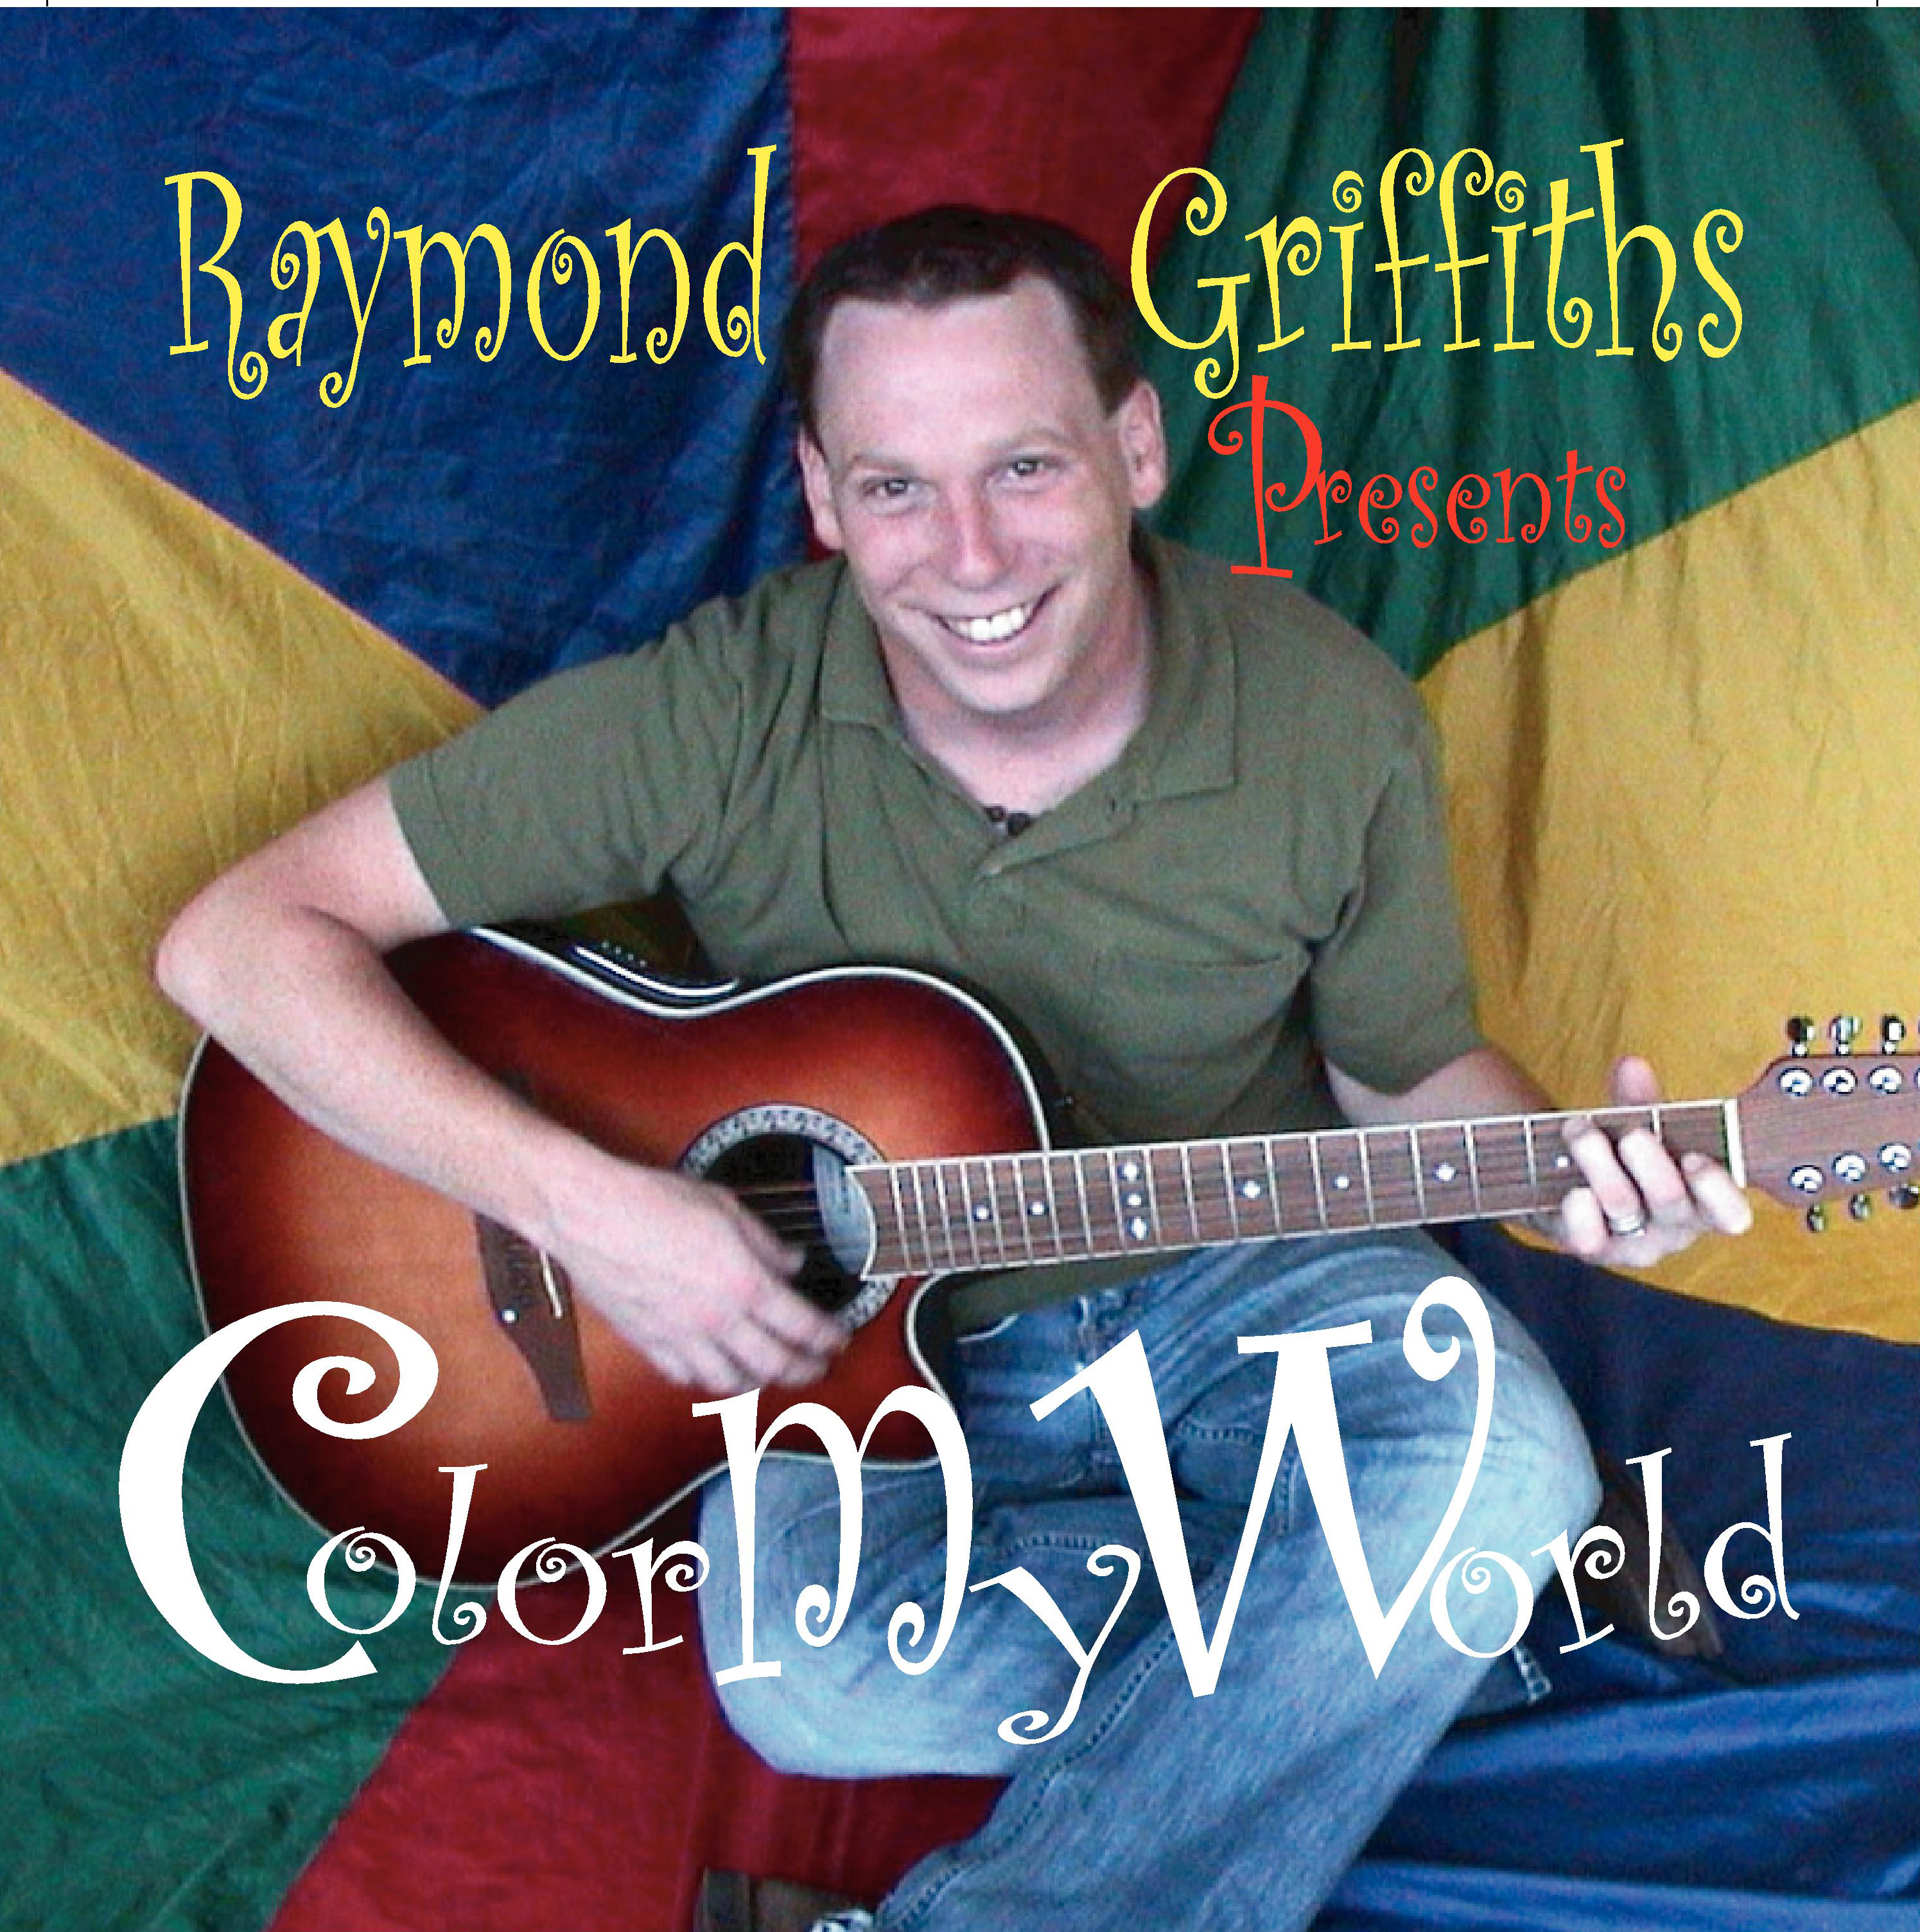 raymond griffiths color my world.jpg